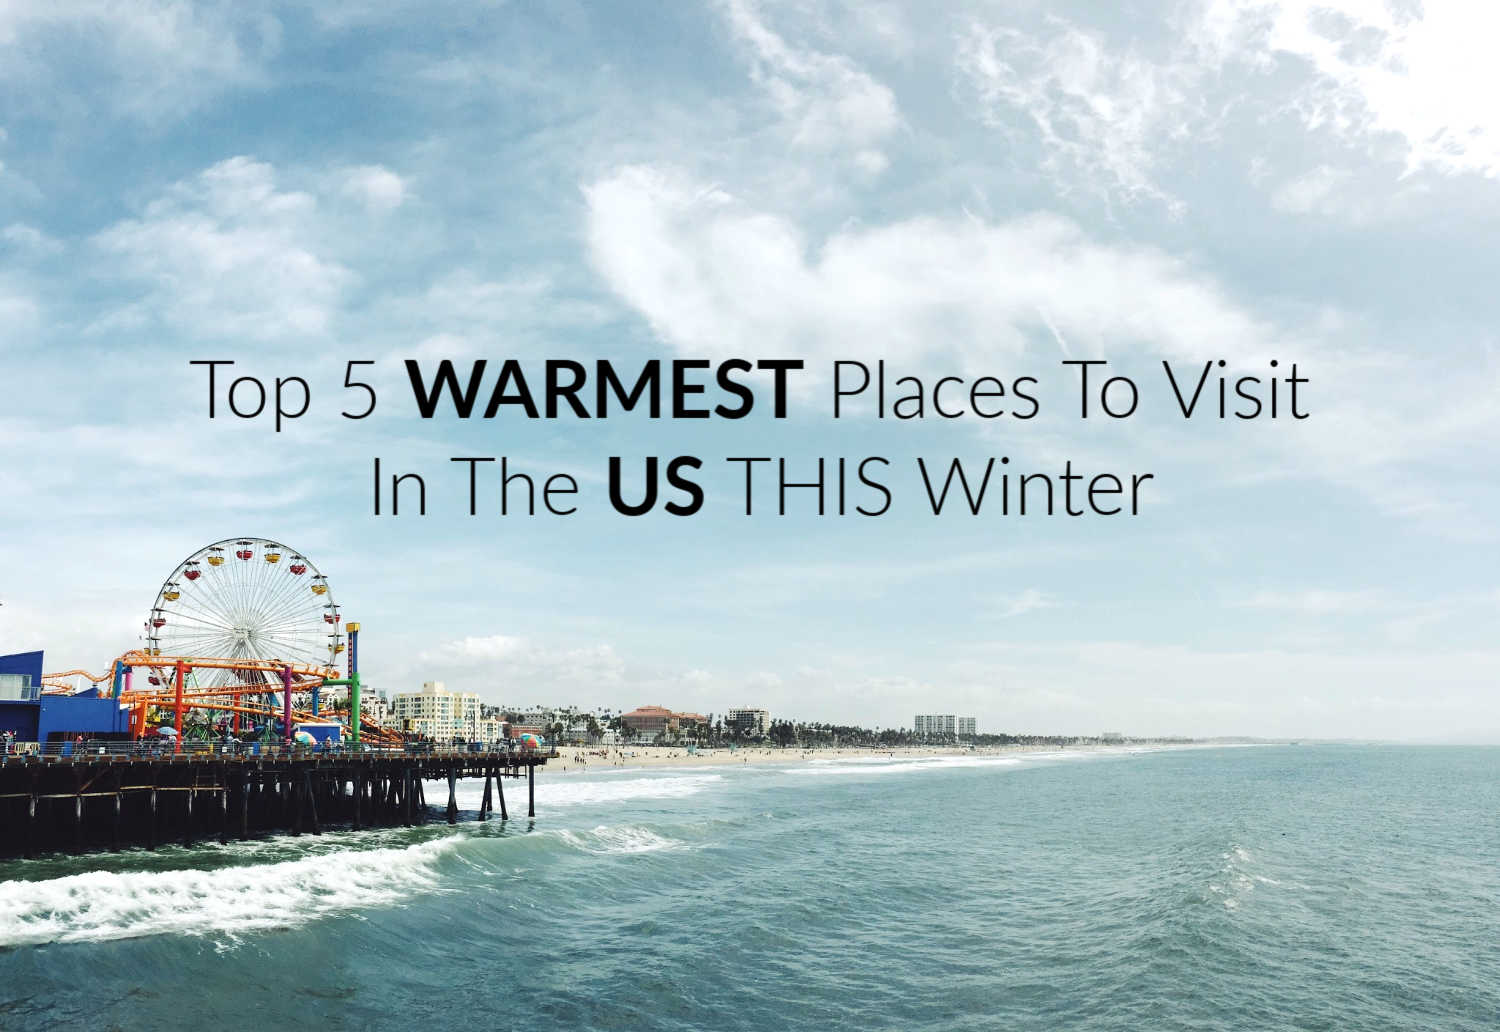 Top 5 Warmest Places To Visit In The USA This Winter